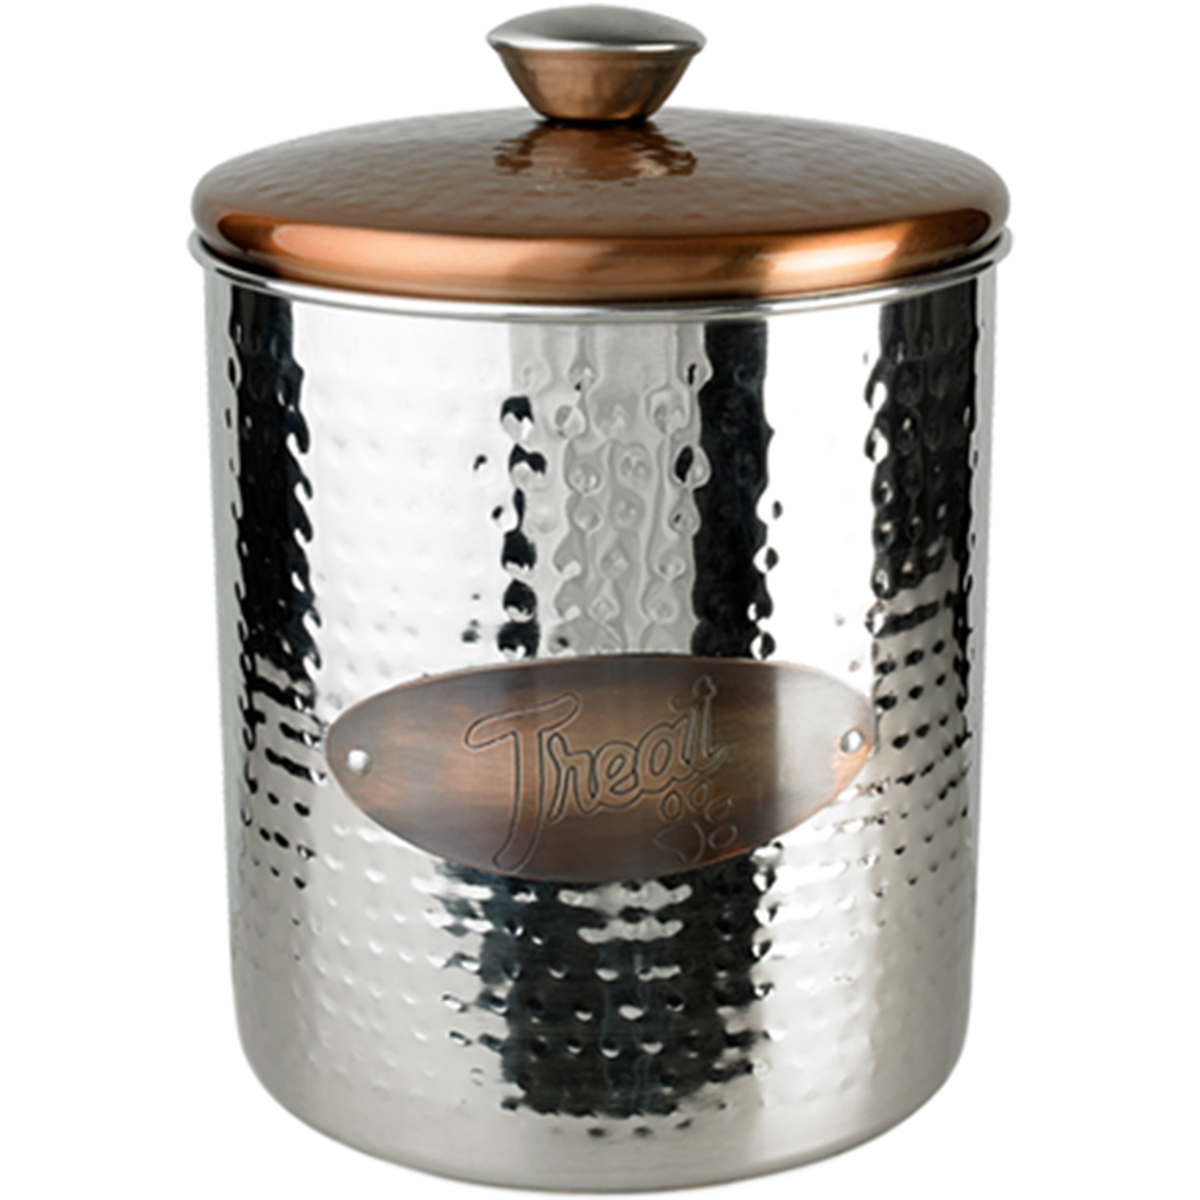 Hammered Stainless Steel & Copper Top Treat Jar 16oz-